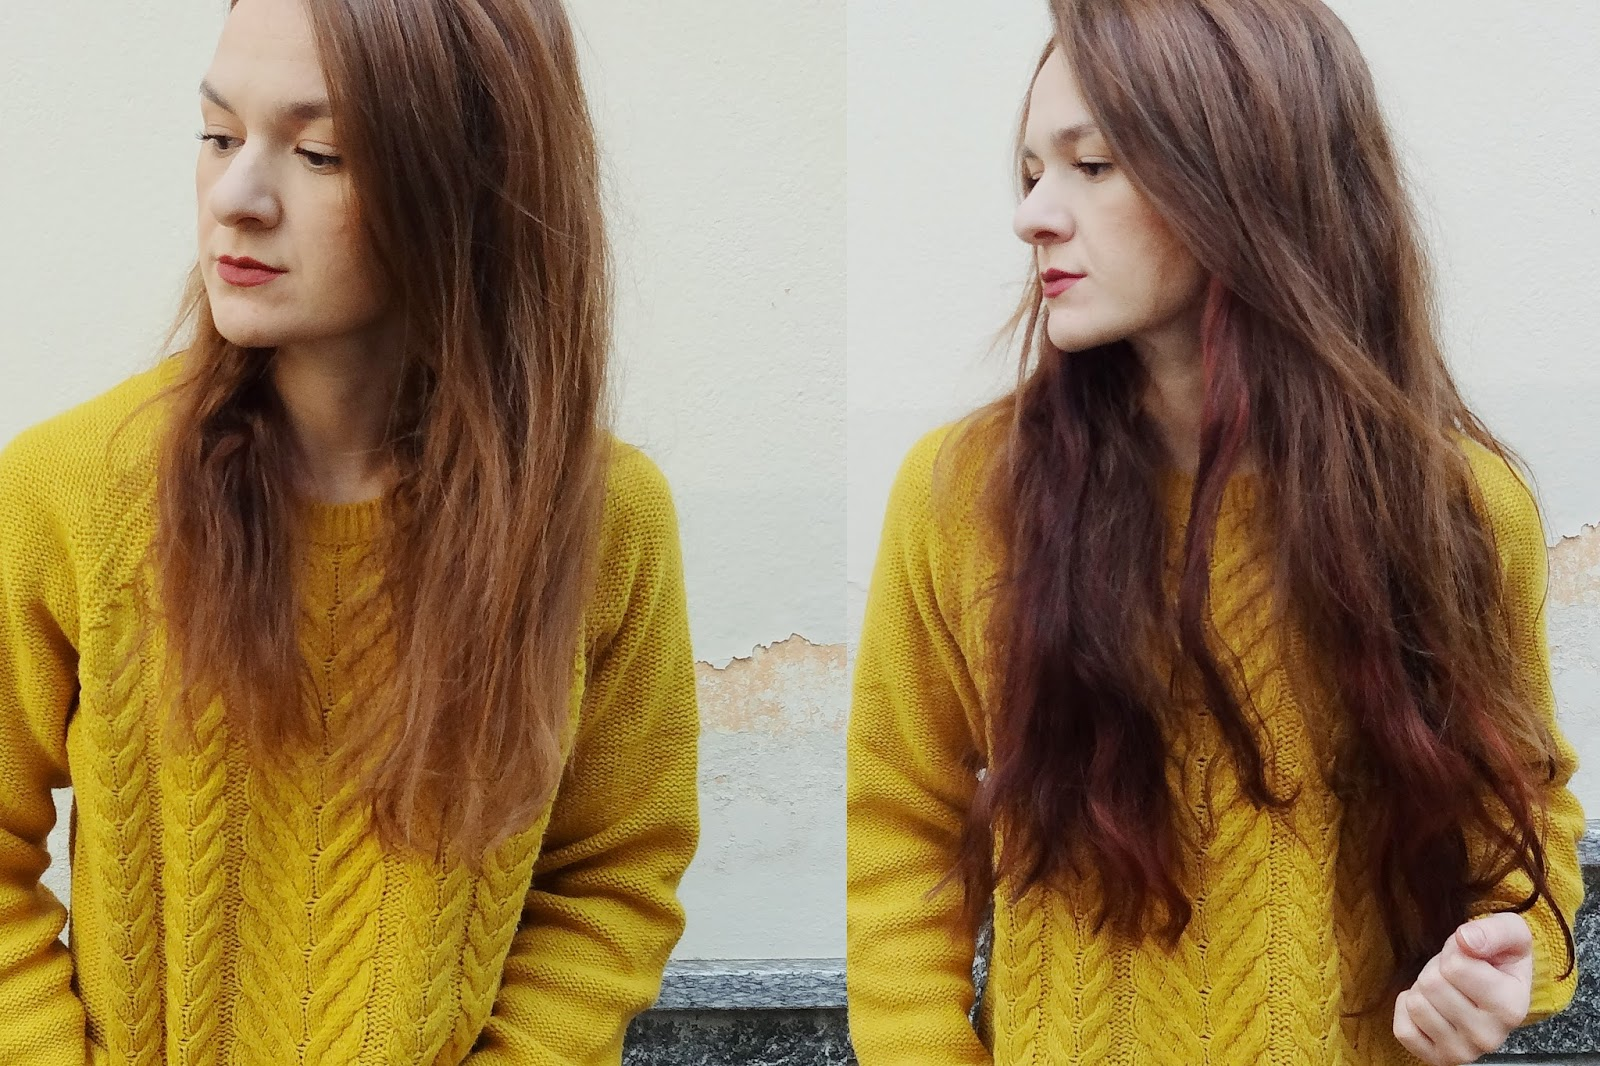 Review irresistible me hair extensions she is mary beauty mine was not an exact match but i think it created a pretty ombr effect as they blended nicely with my natural hair colour pmusecretfo Images